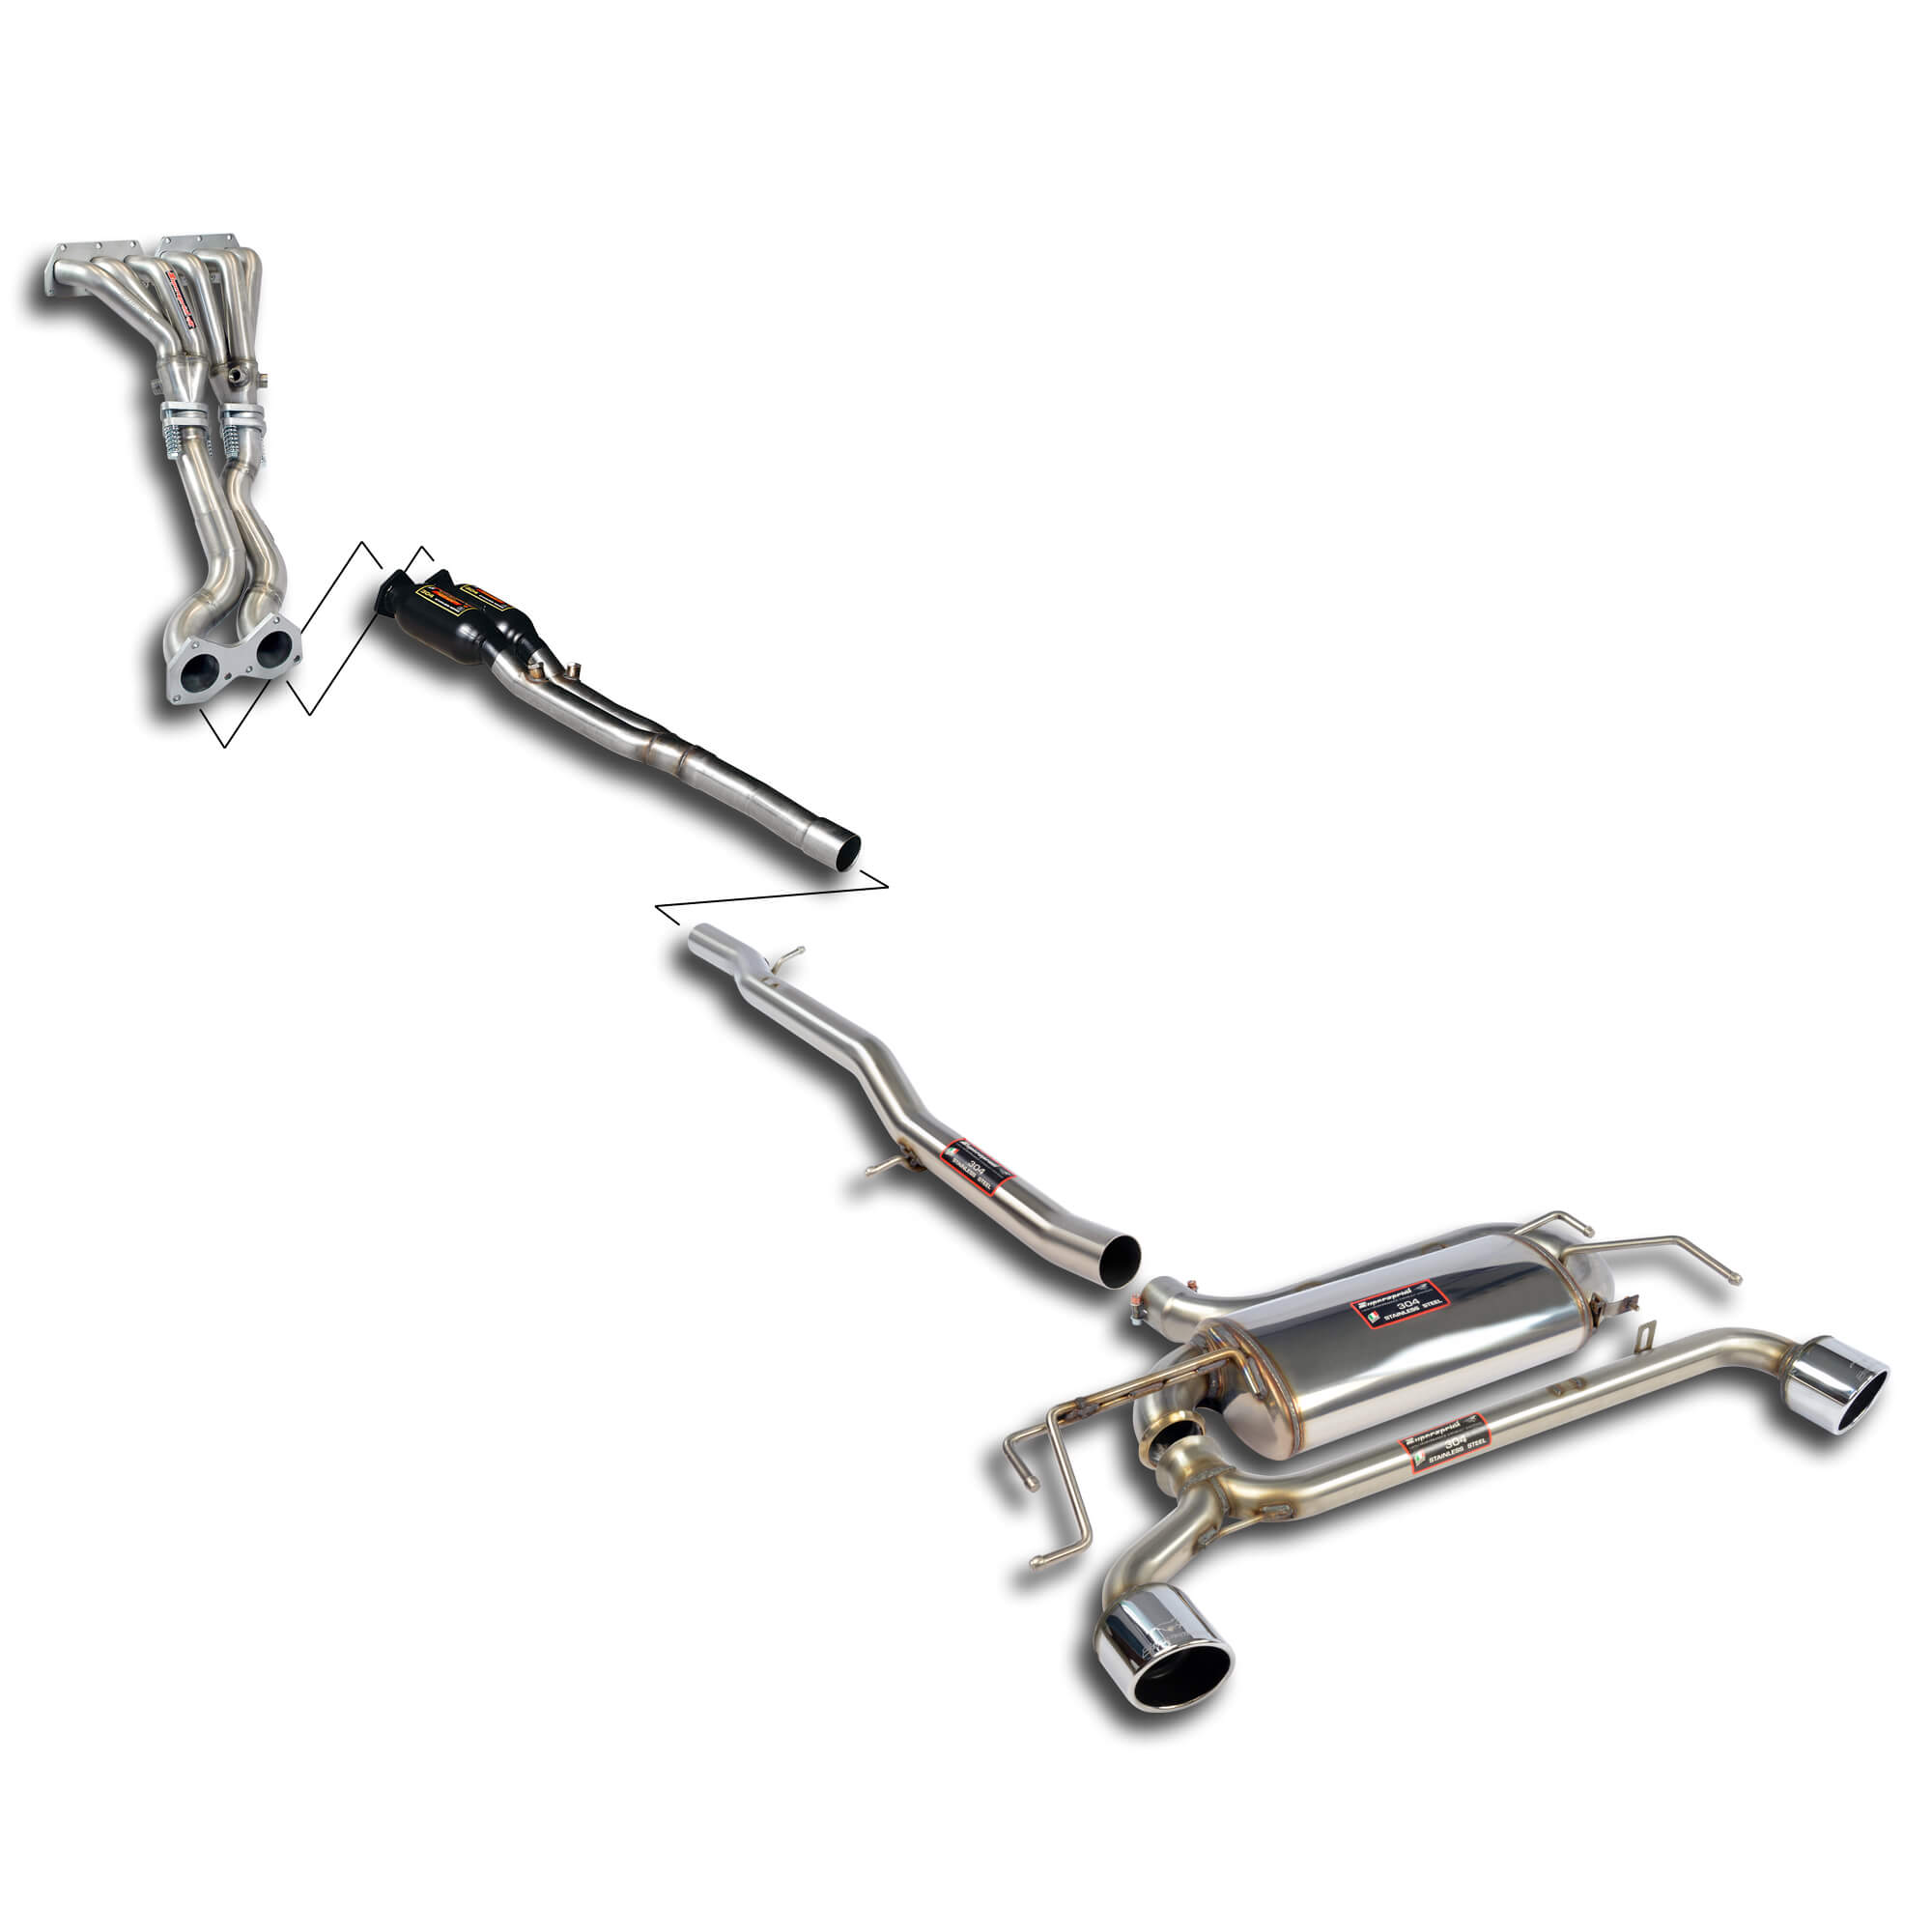 ... Tools besides 2006 Honda Crf250x Wiring Diagram in addition What Is  Value Of 2012 Yamaha Waverunner ...